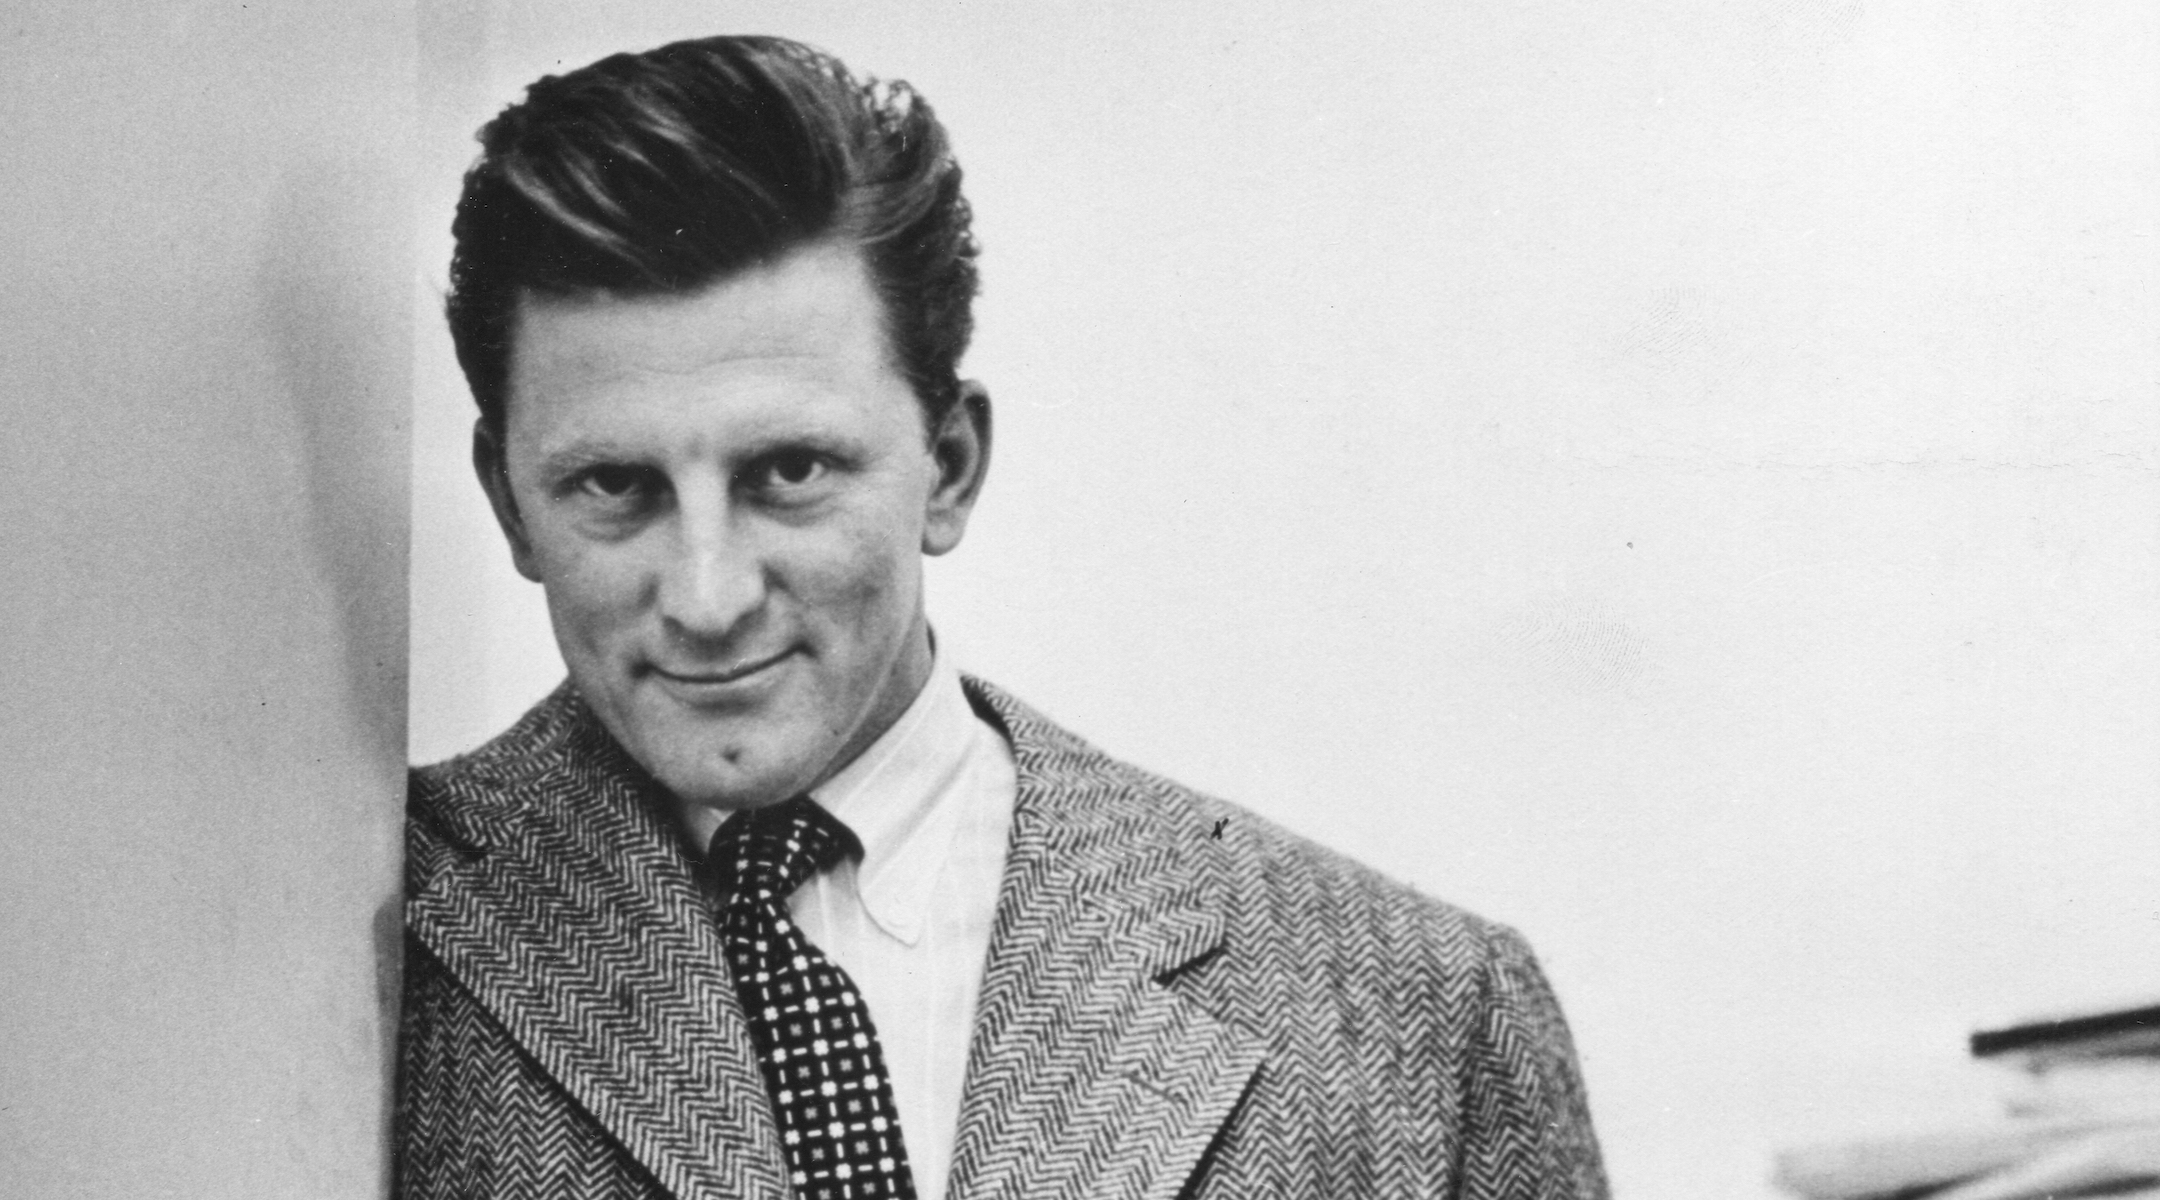 https://www.jta.org/2020/02/05/culture/kirk-douglas-iconic-movie-star-who-reconnected-to-judaism-later-in-life-dies-at-103